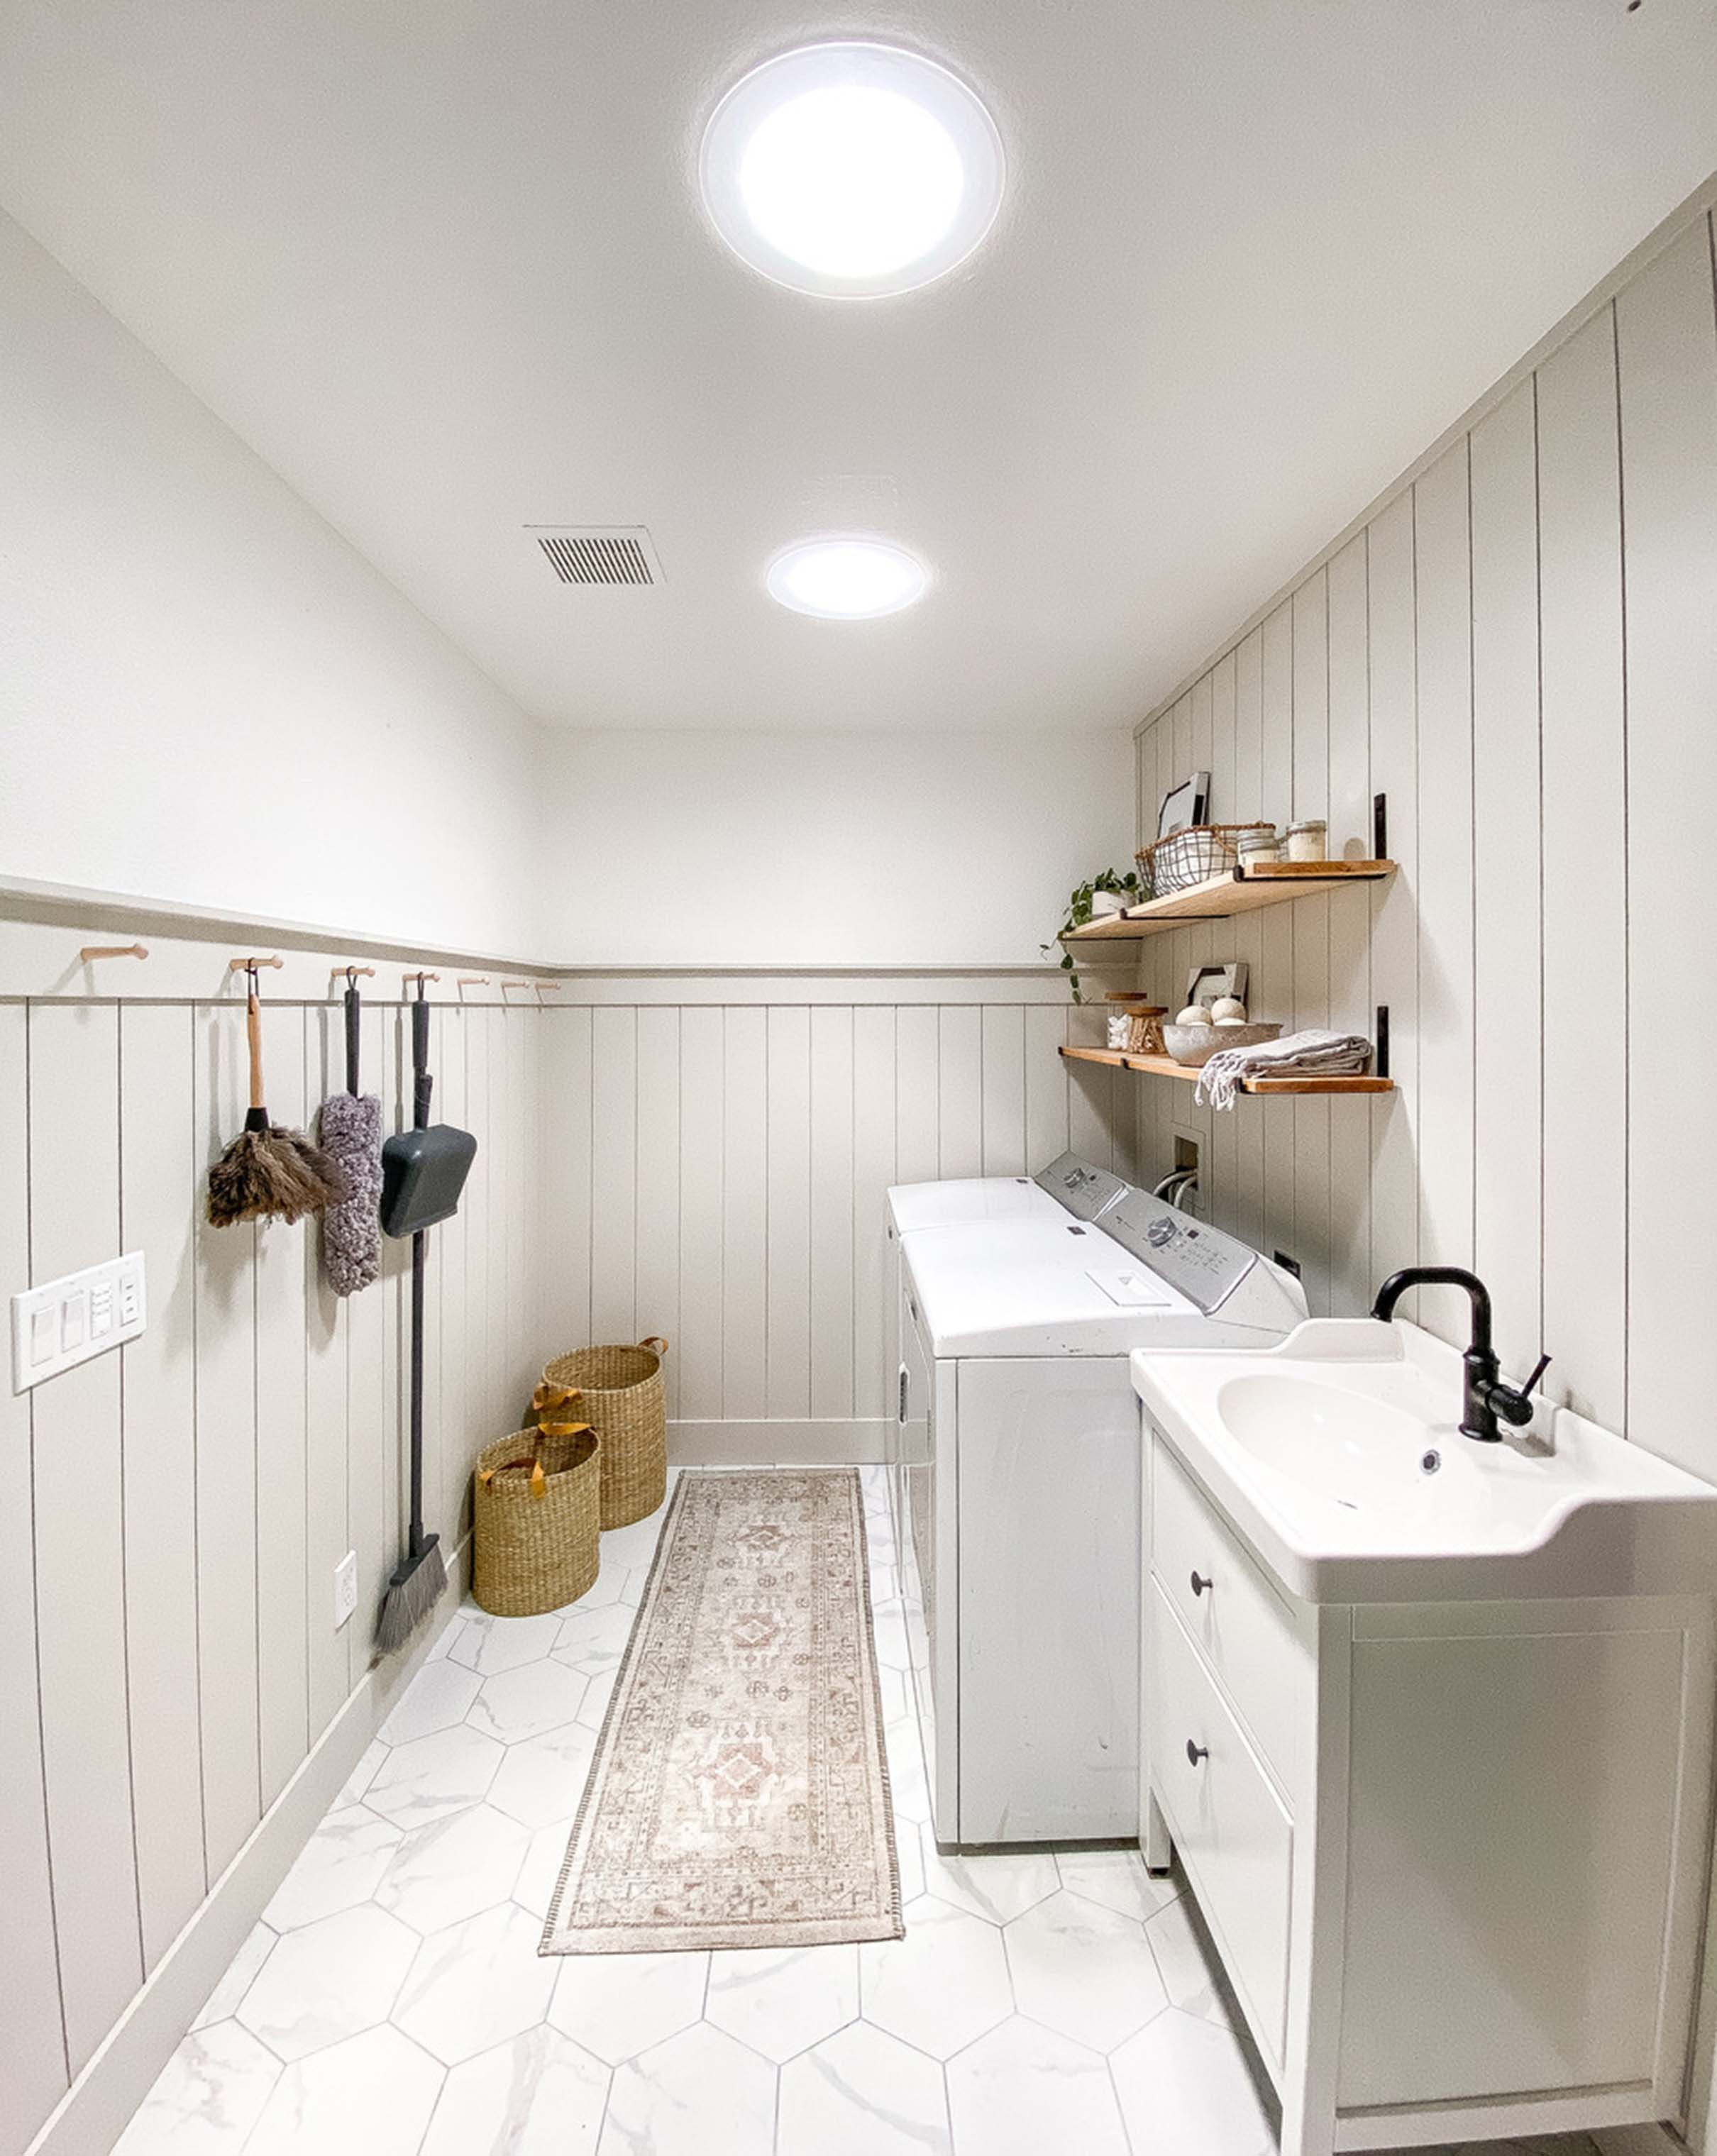 two sun tunnels brighten a white and greige laundry room